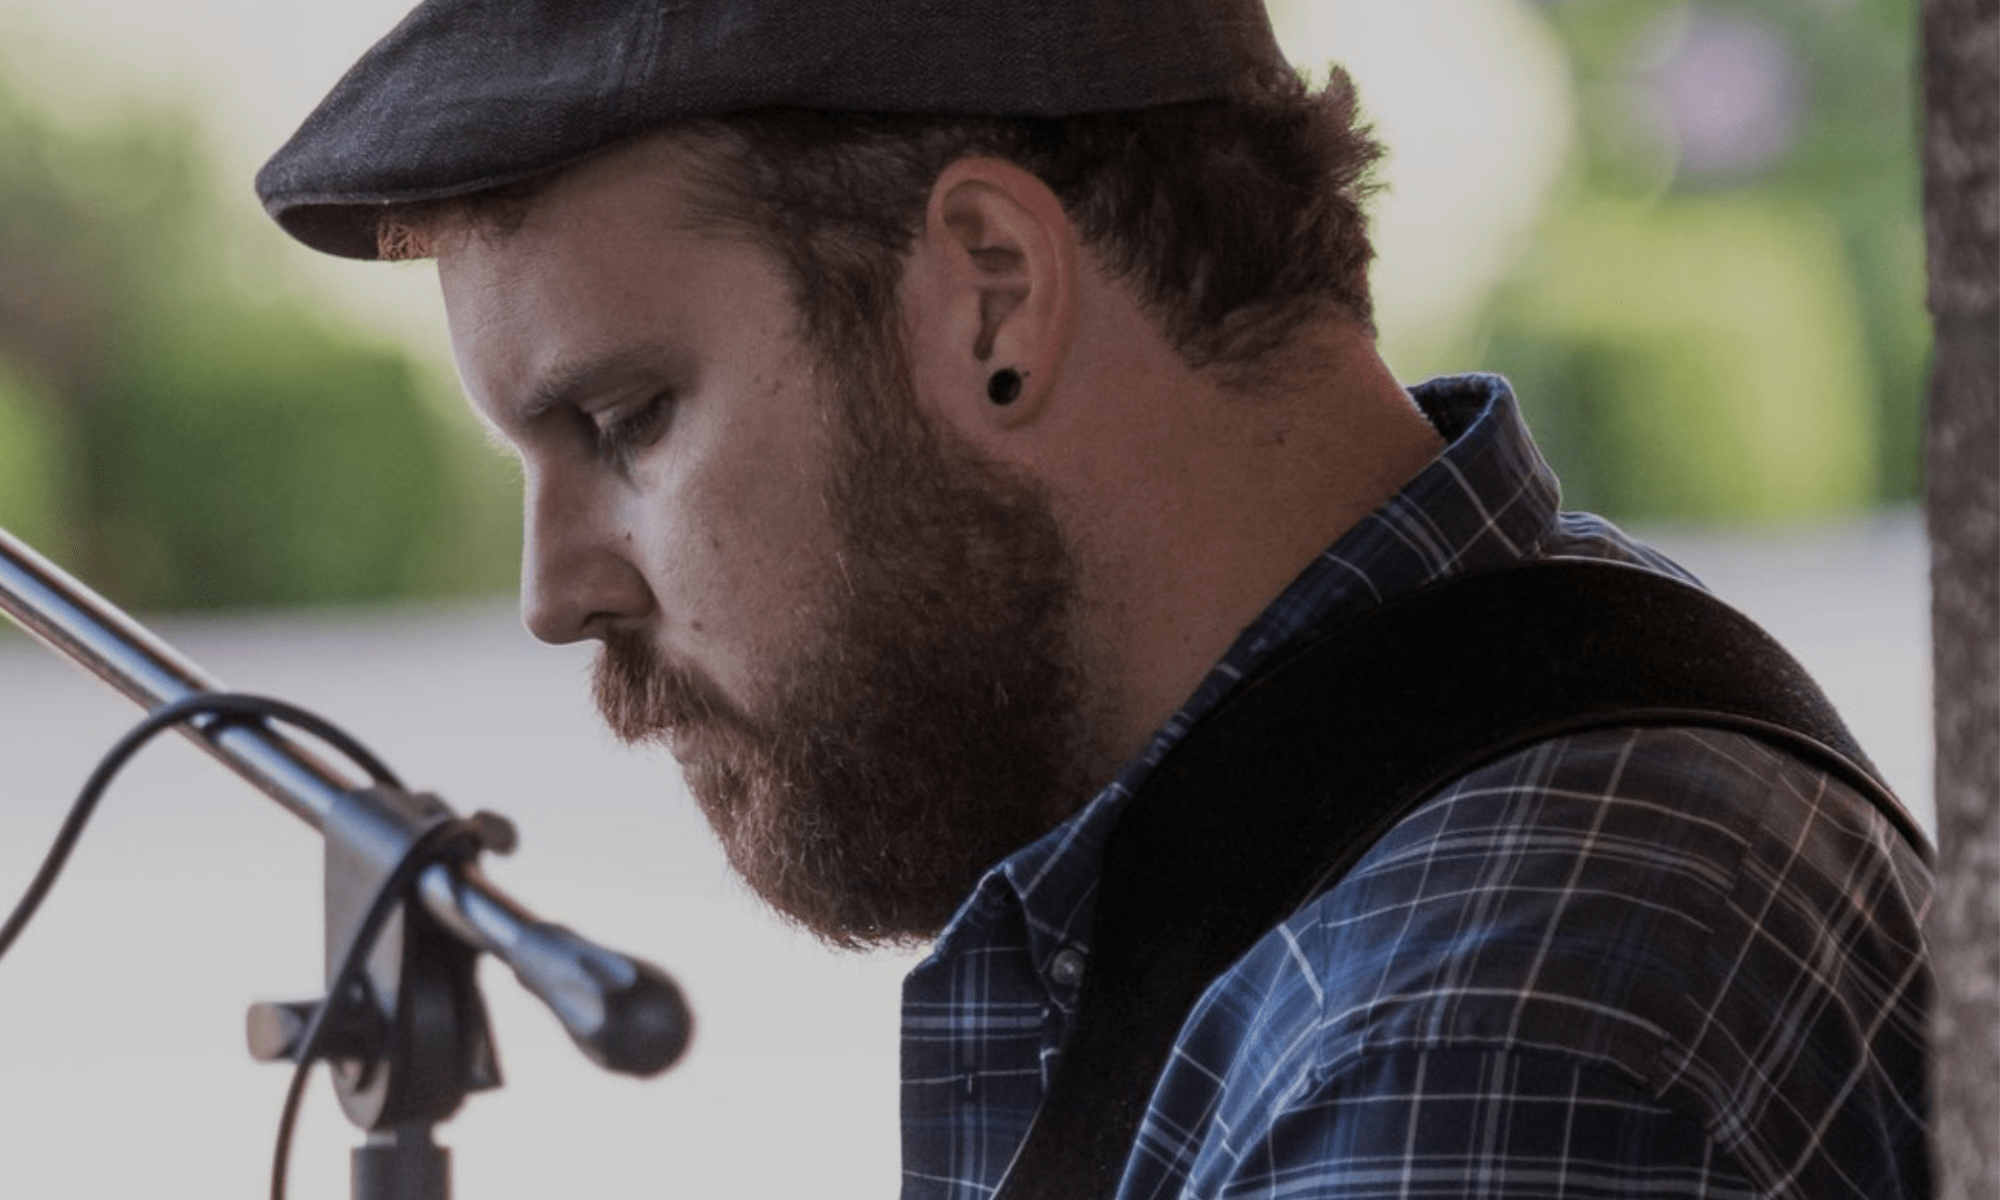 Neil Gregory Johnson is a powerhouse rising country star from the Pacific Northwest.